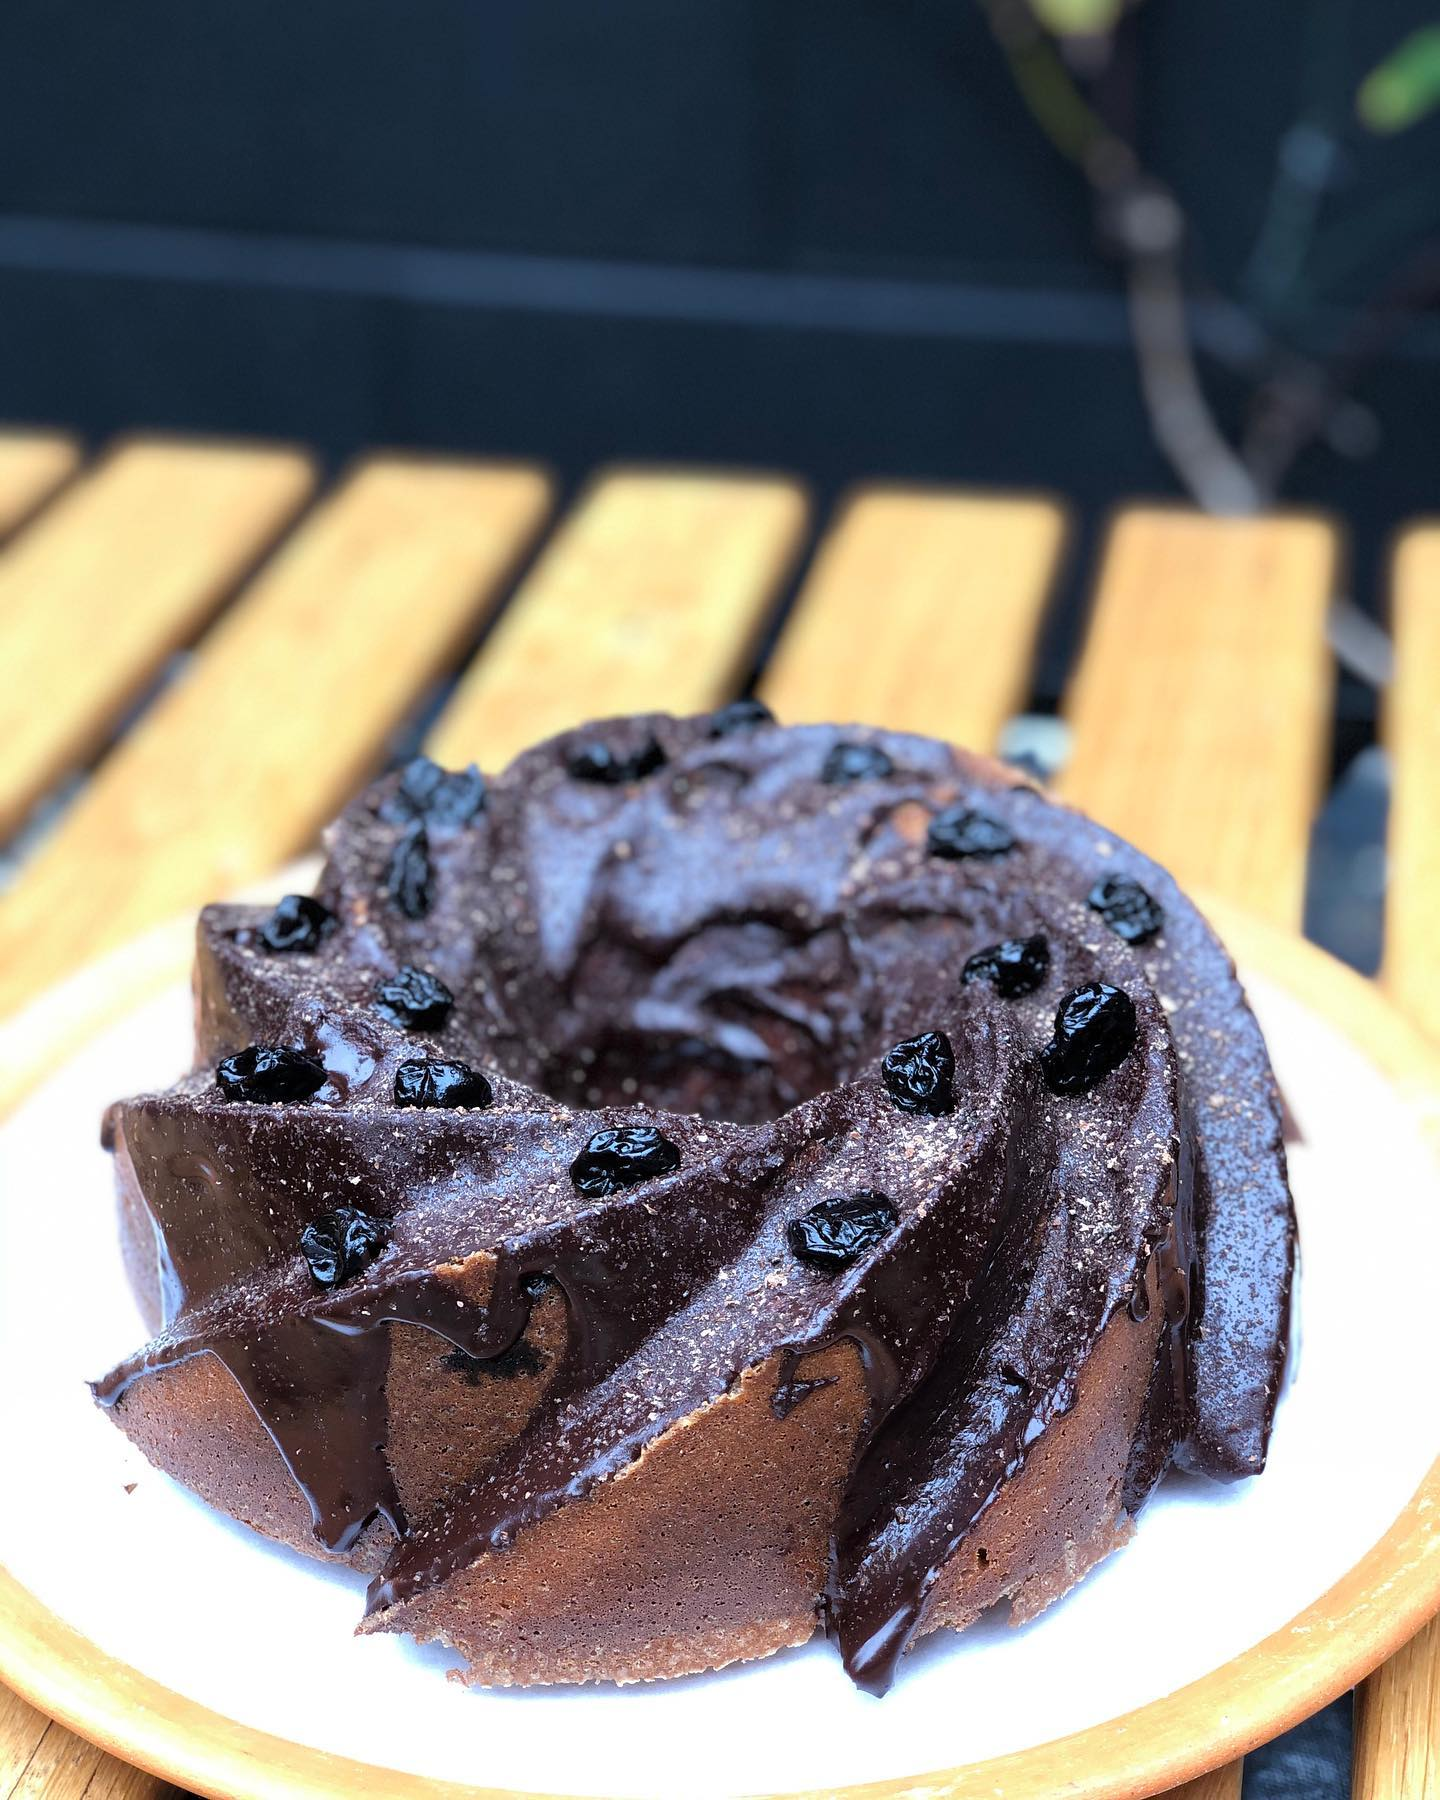 Goodmorning! 🌞 How about a Brunch cocktail 🍹 from @faden.sonnen and a slice of this beauty. It's a Almond Cherry Bundt Cake w/ Chocolate Ganache, made this morning by @beacake  #Brunchtoday 10-2p